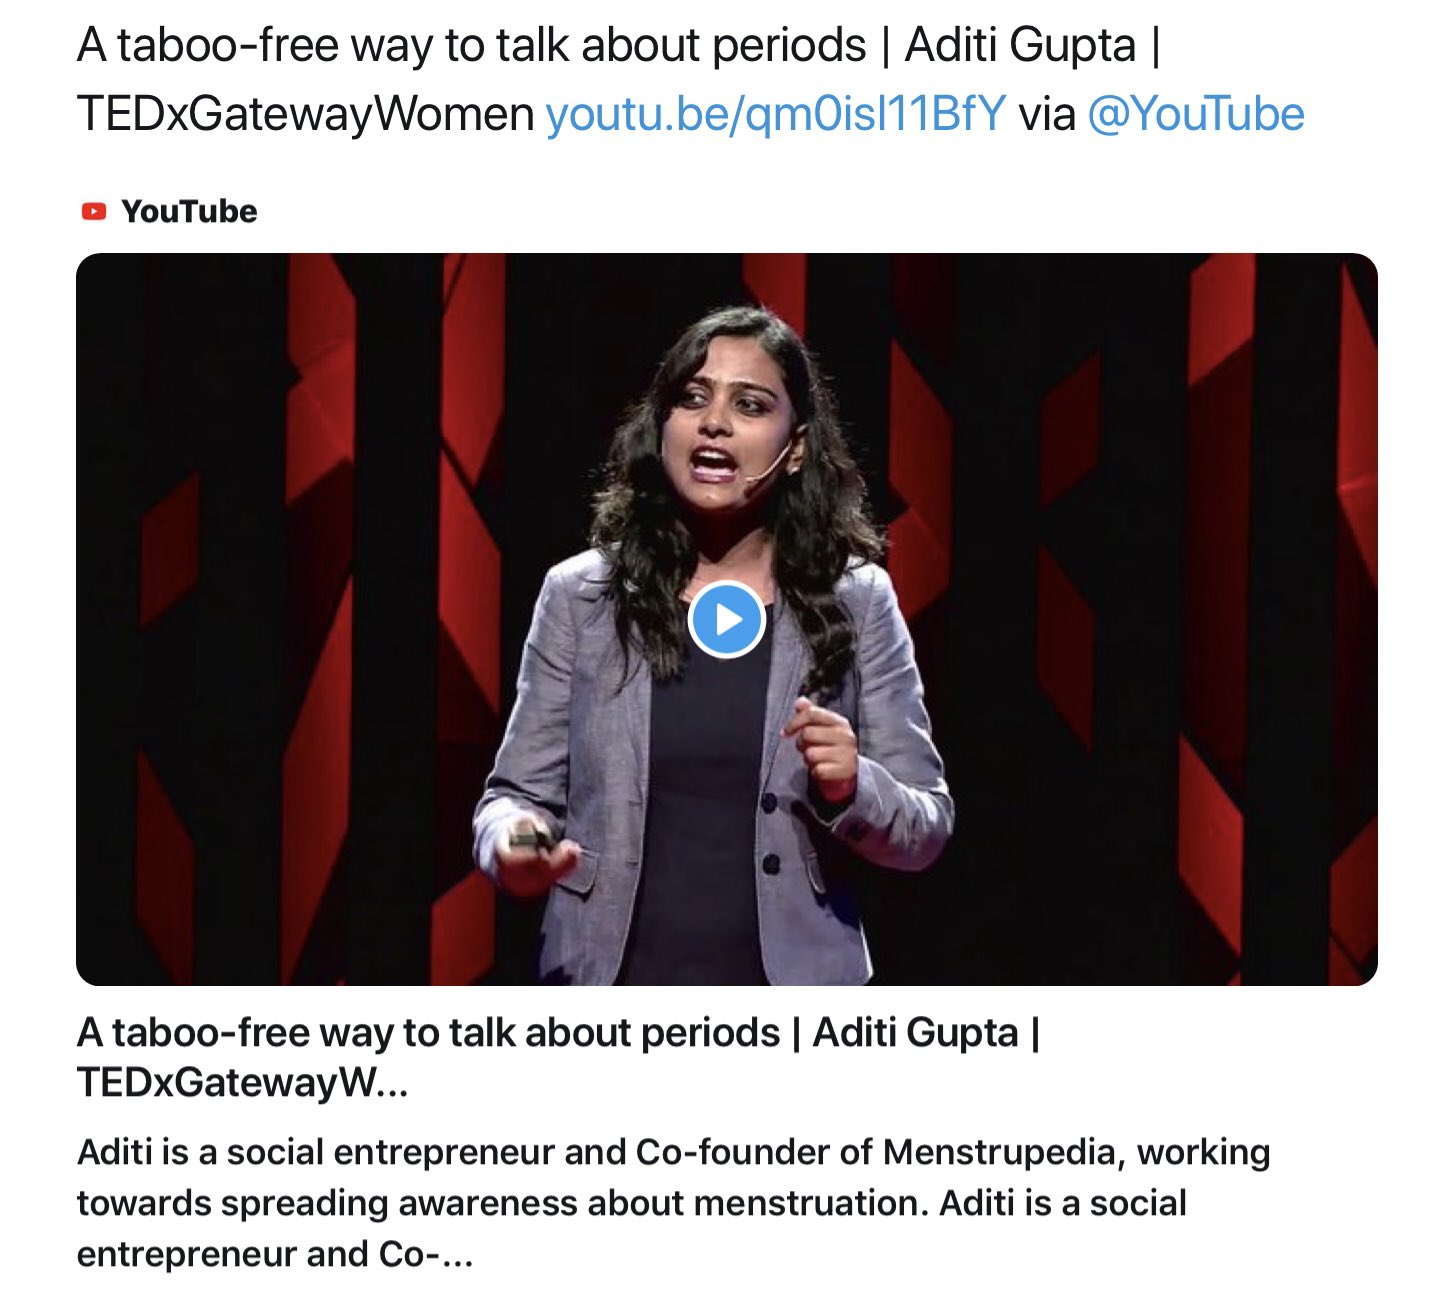 a taboo free way to talk about periods